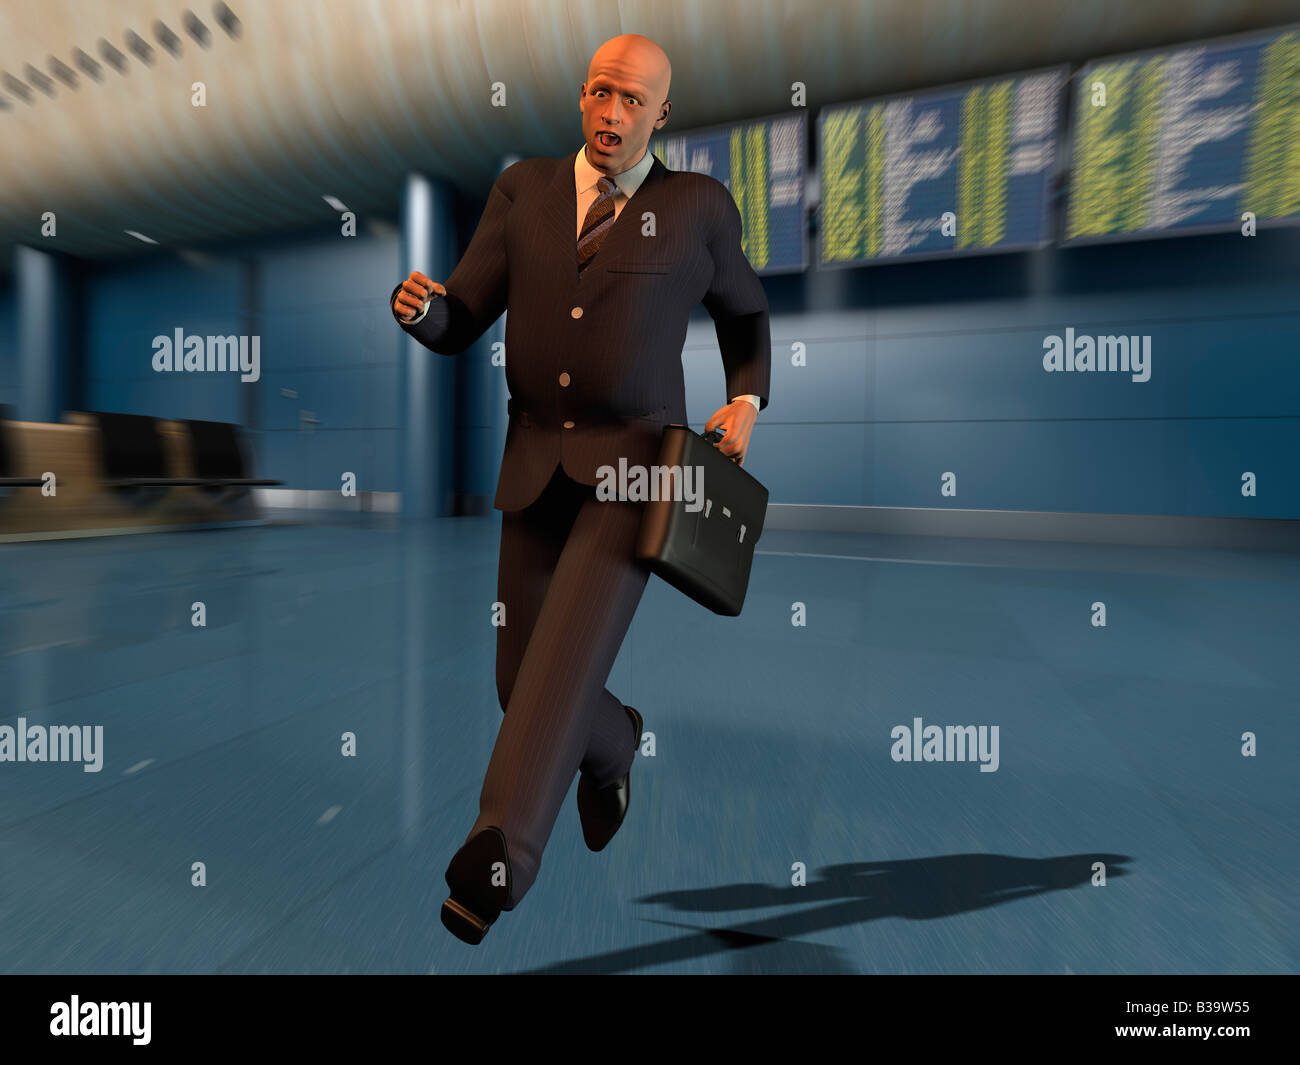 Computer Illustration Of A Businessman Running In An Airport - Stock Image